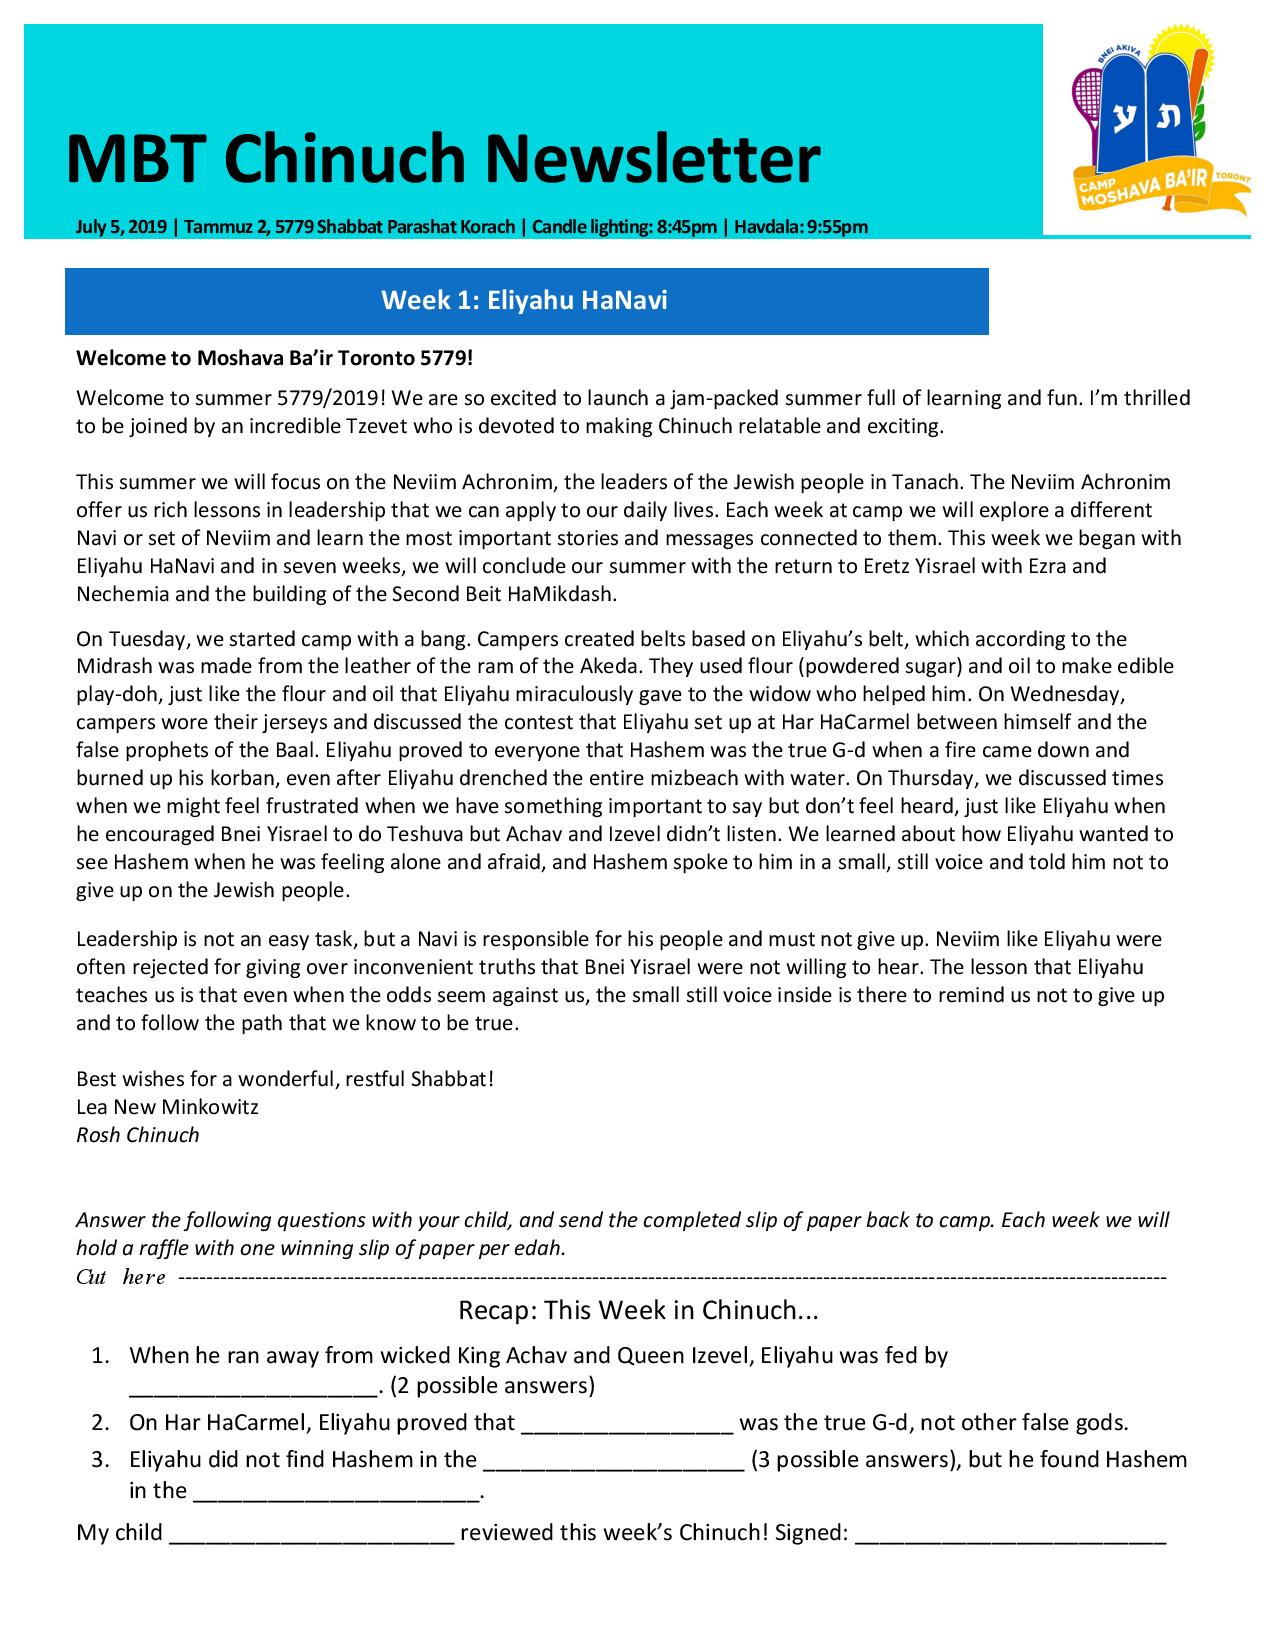 Weekly Chinuch Newsletter_Eliyahu (1)-page-001.jpg